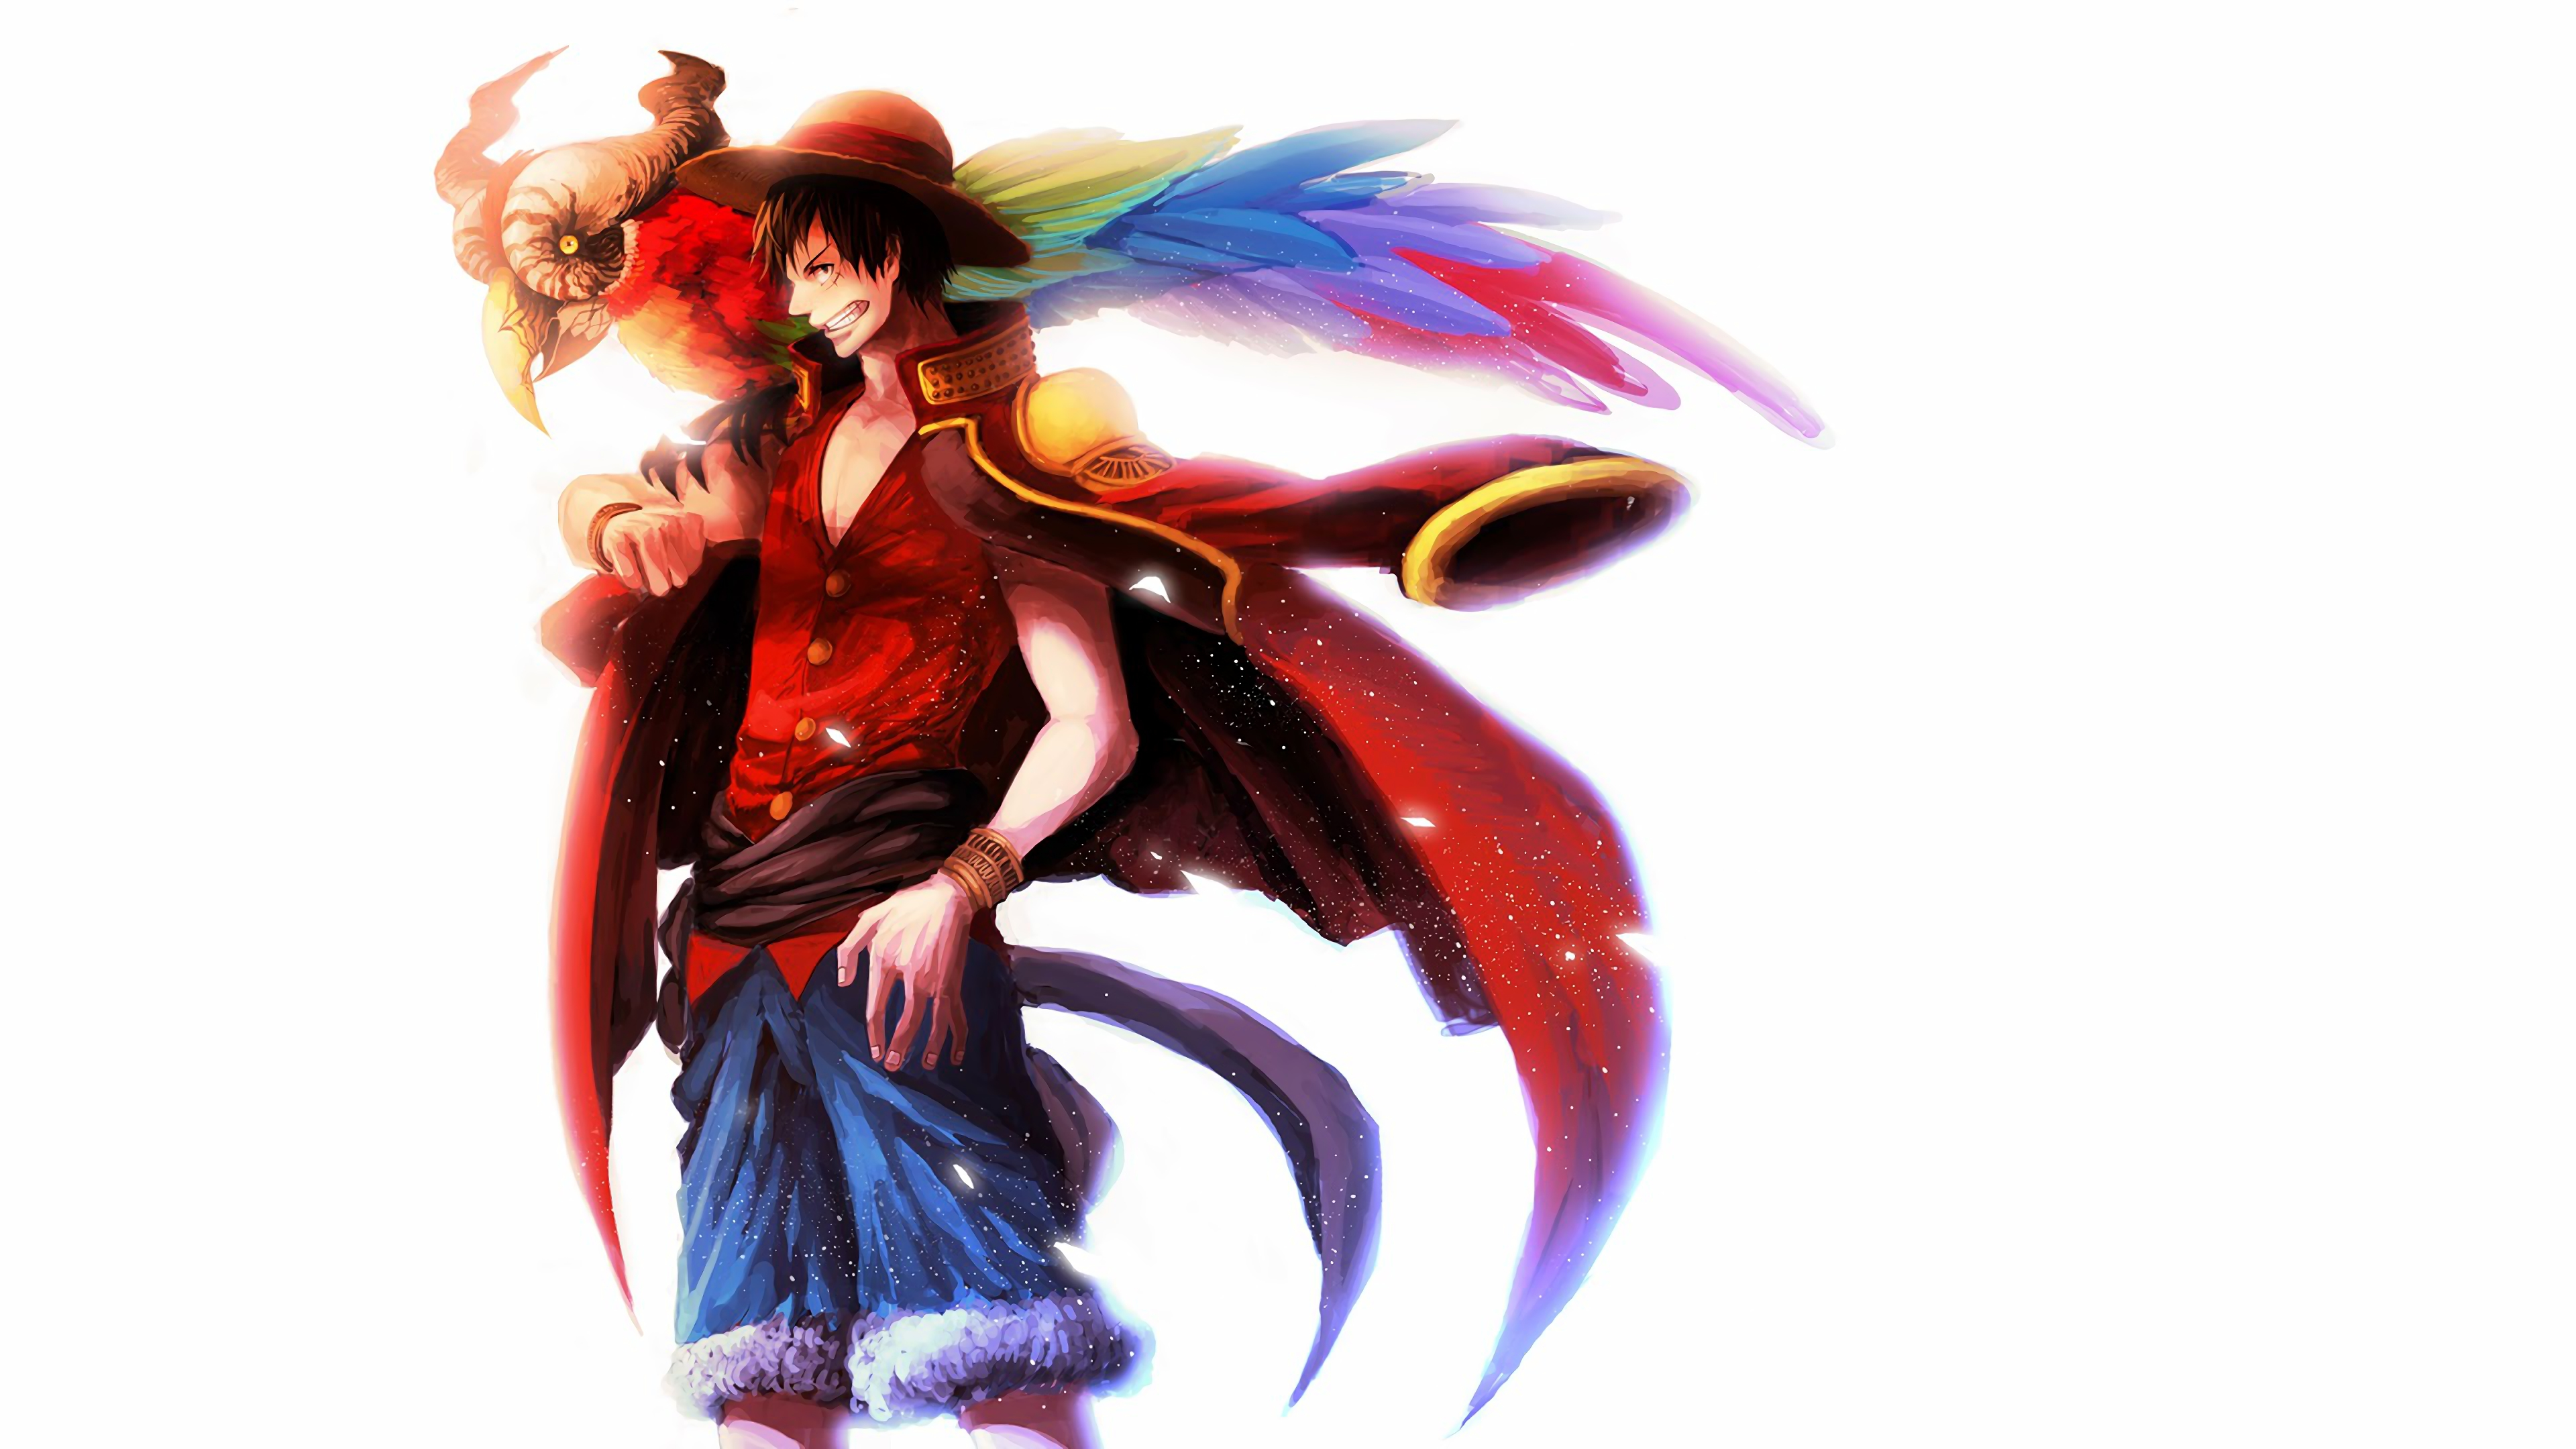 Monkey D Luffy 4k Ultra Hd Wallpaper Background Image 3840x2160